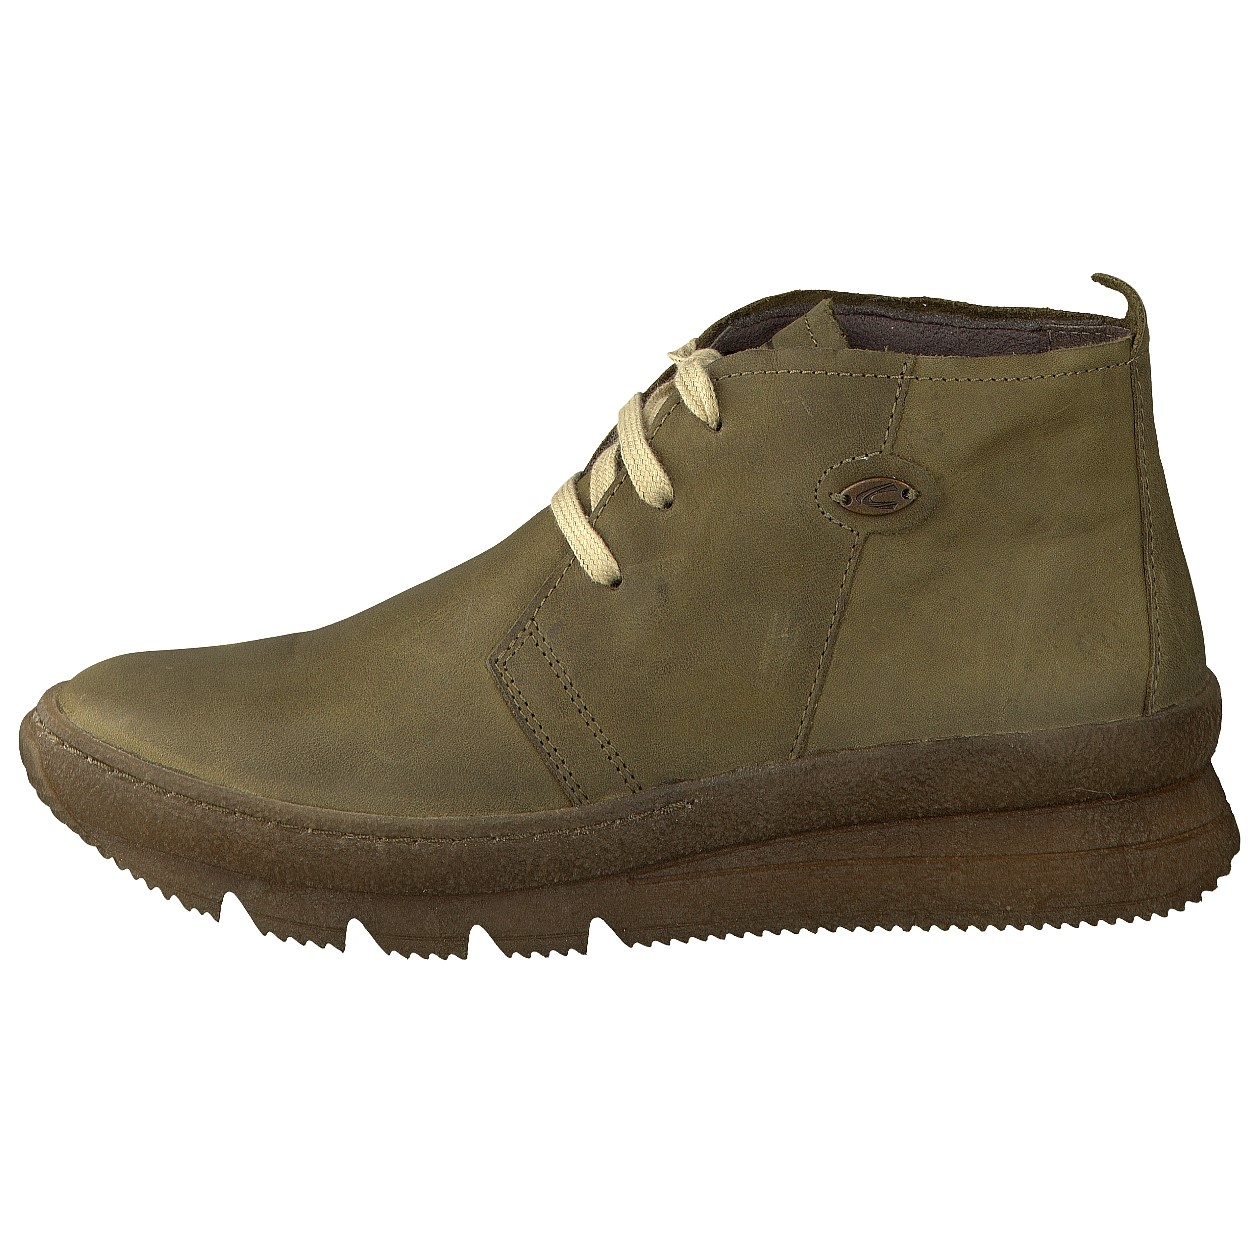 camel active 868.70.03 Authentic 70 olive